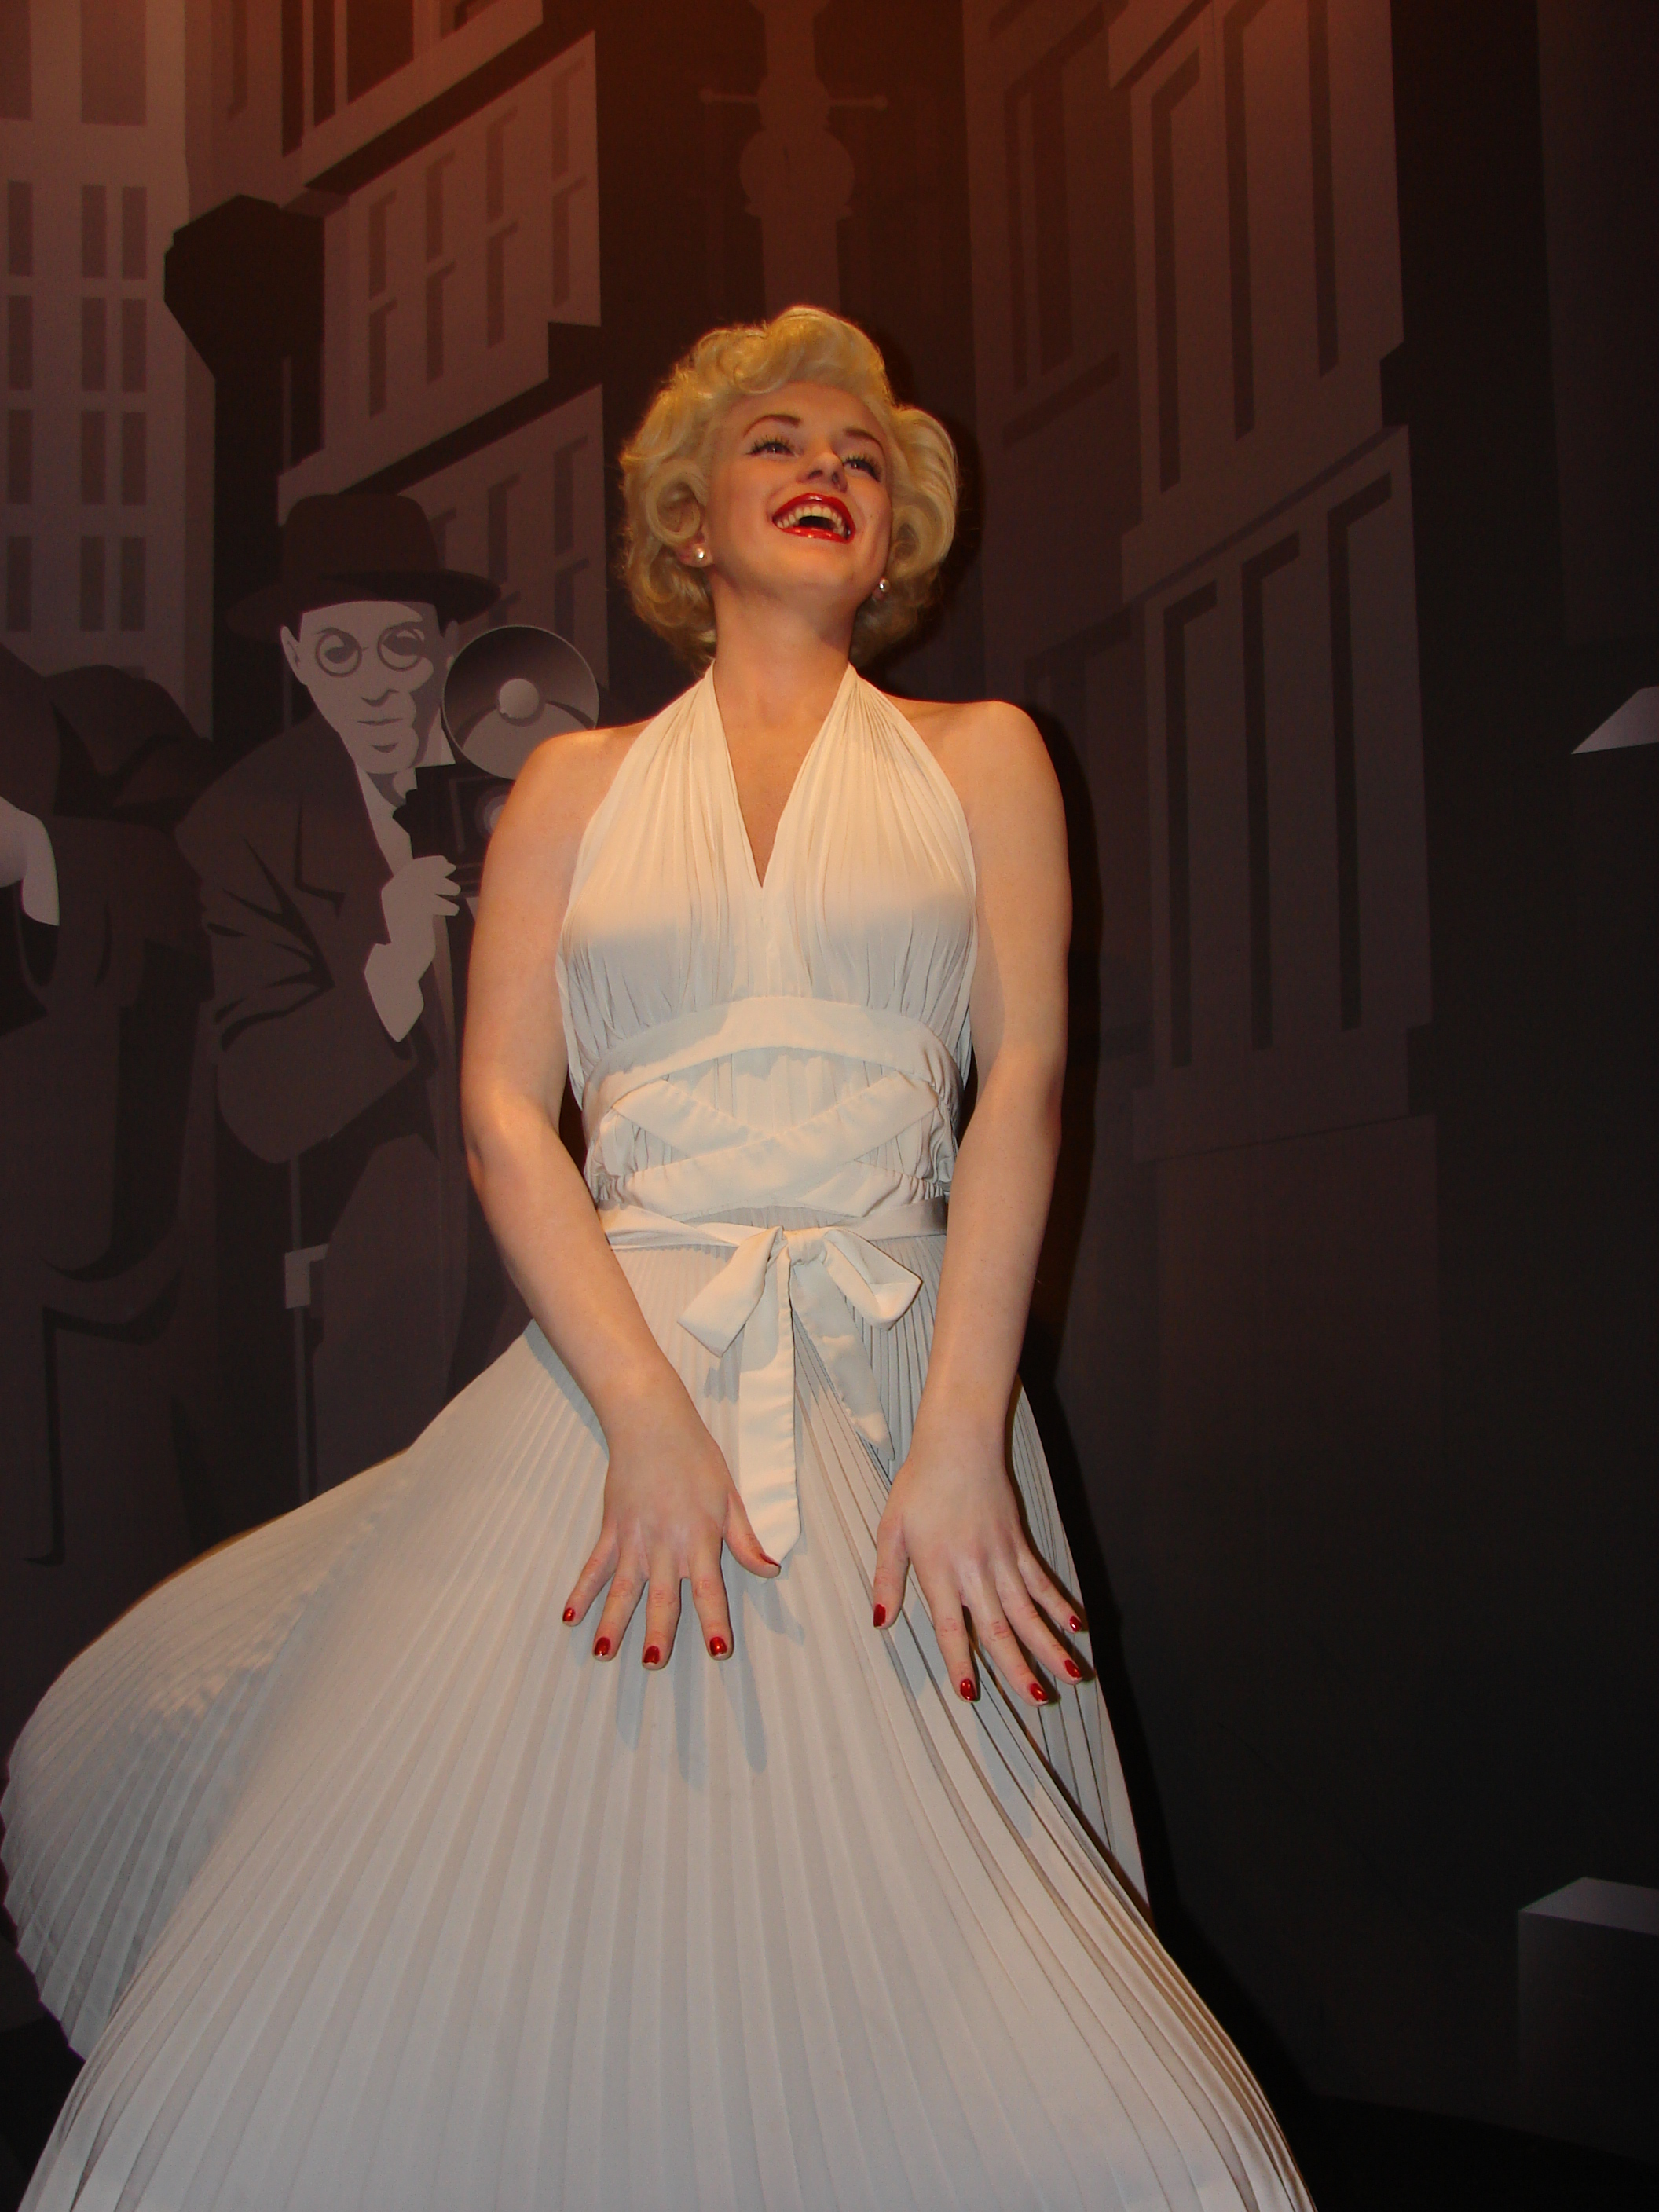 Marilyn-Monroe-Wax-Statue-in-Madame-Tussauds-London